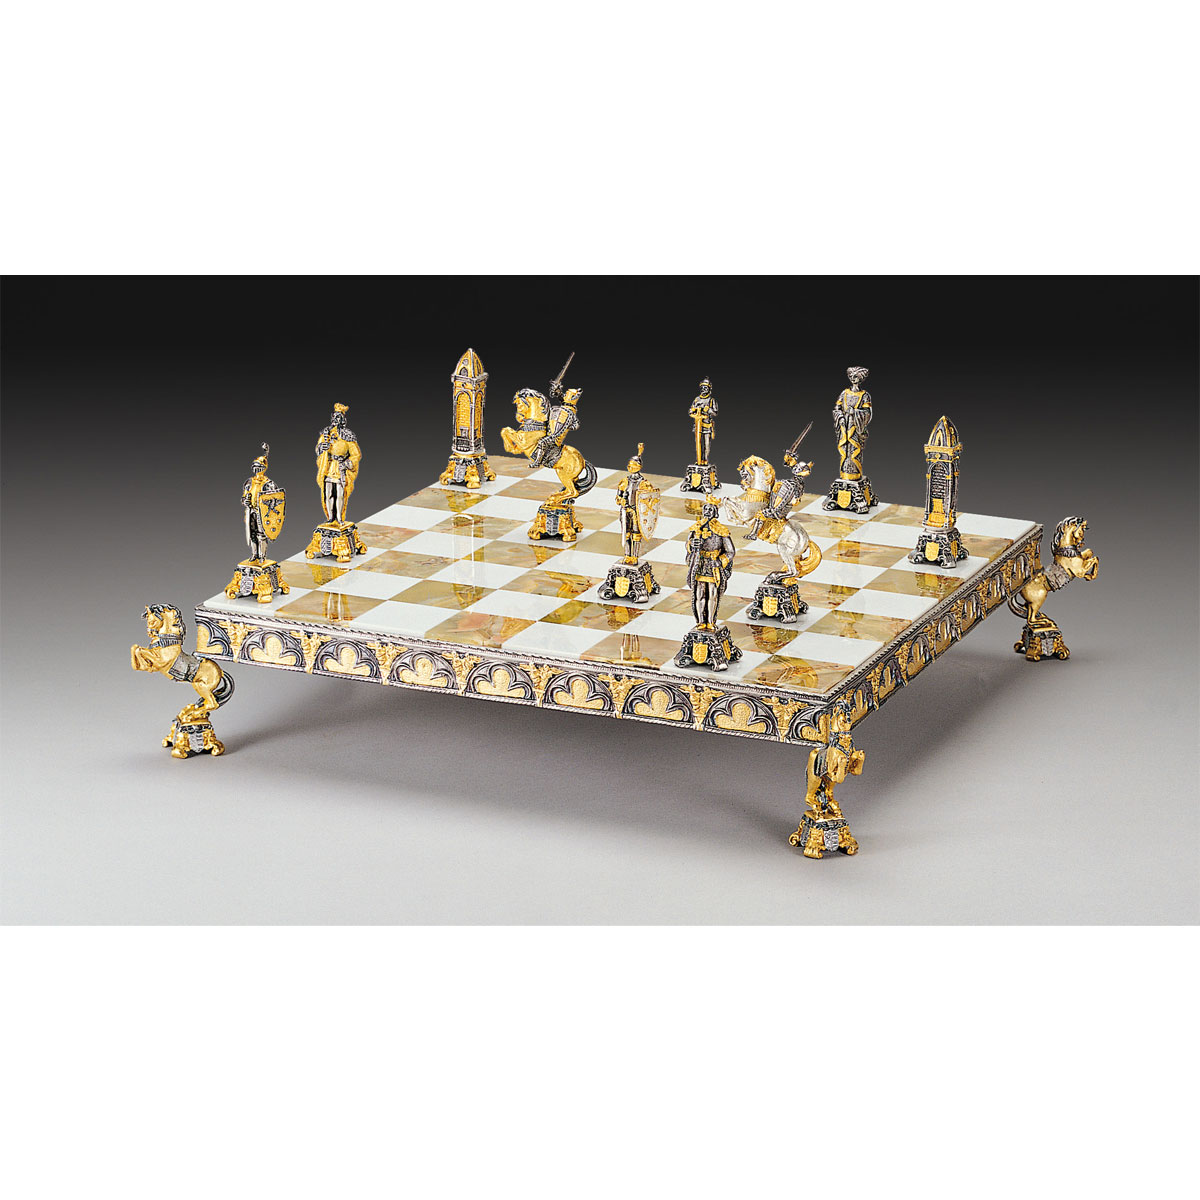 Medioevo (Medieval) Gold and Silver Theme Chess Set